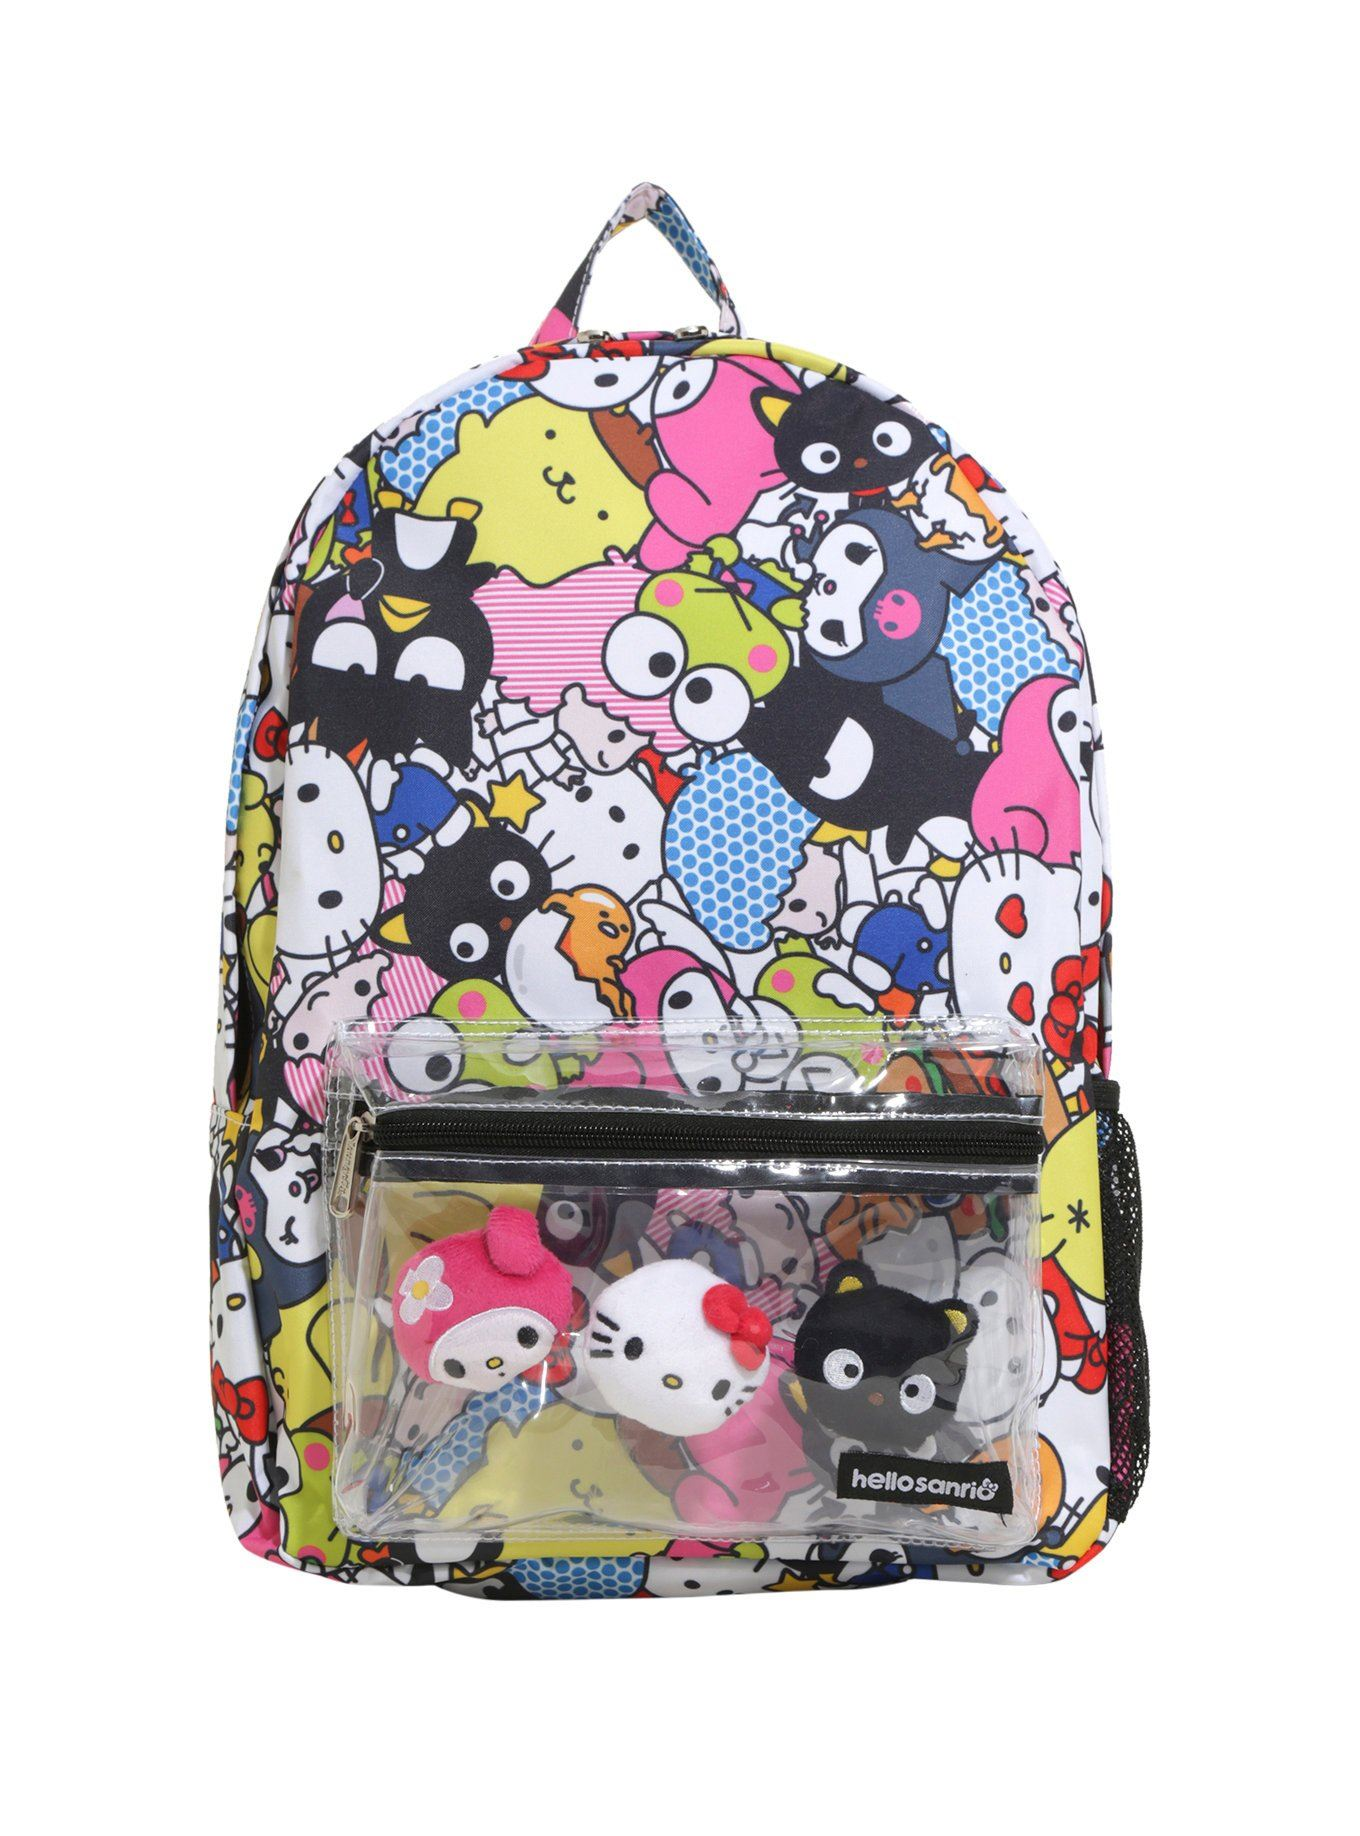 834ab982580 Official merchandise. Hello Sanrio Kitty Allover Character Backpack